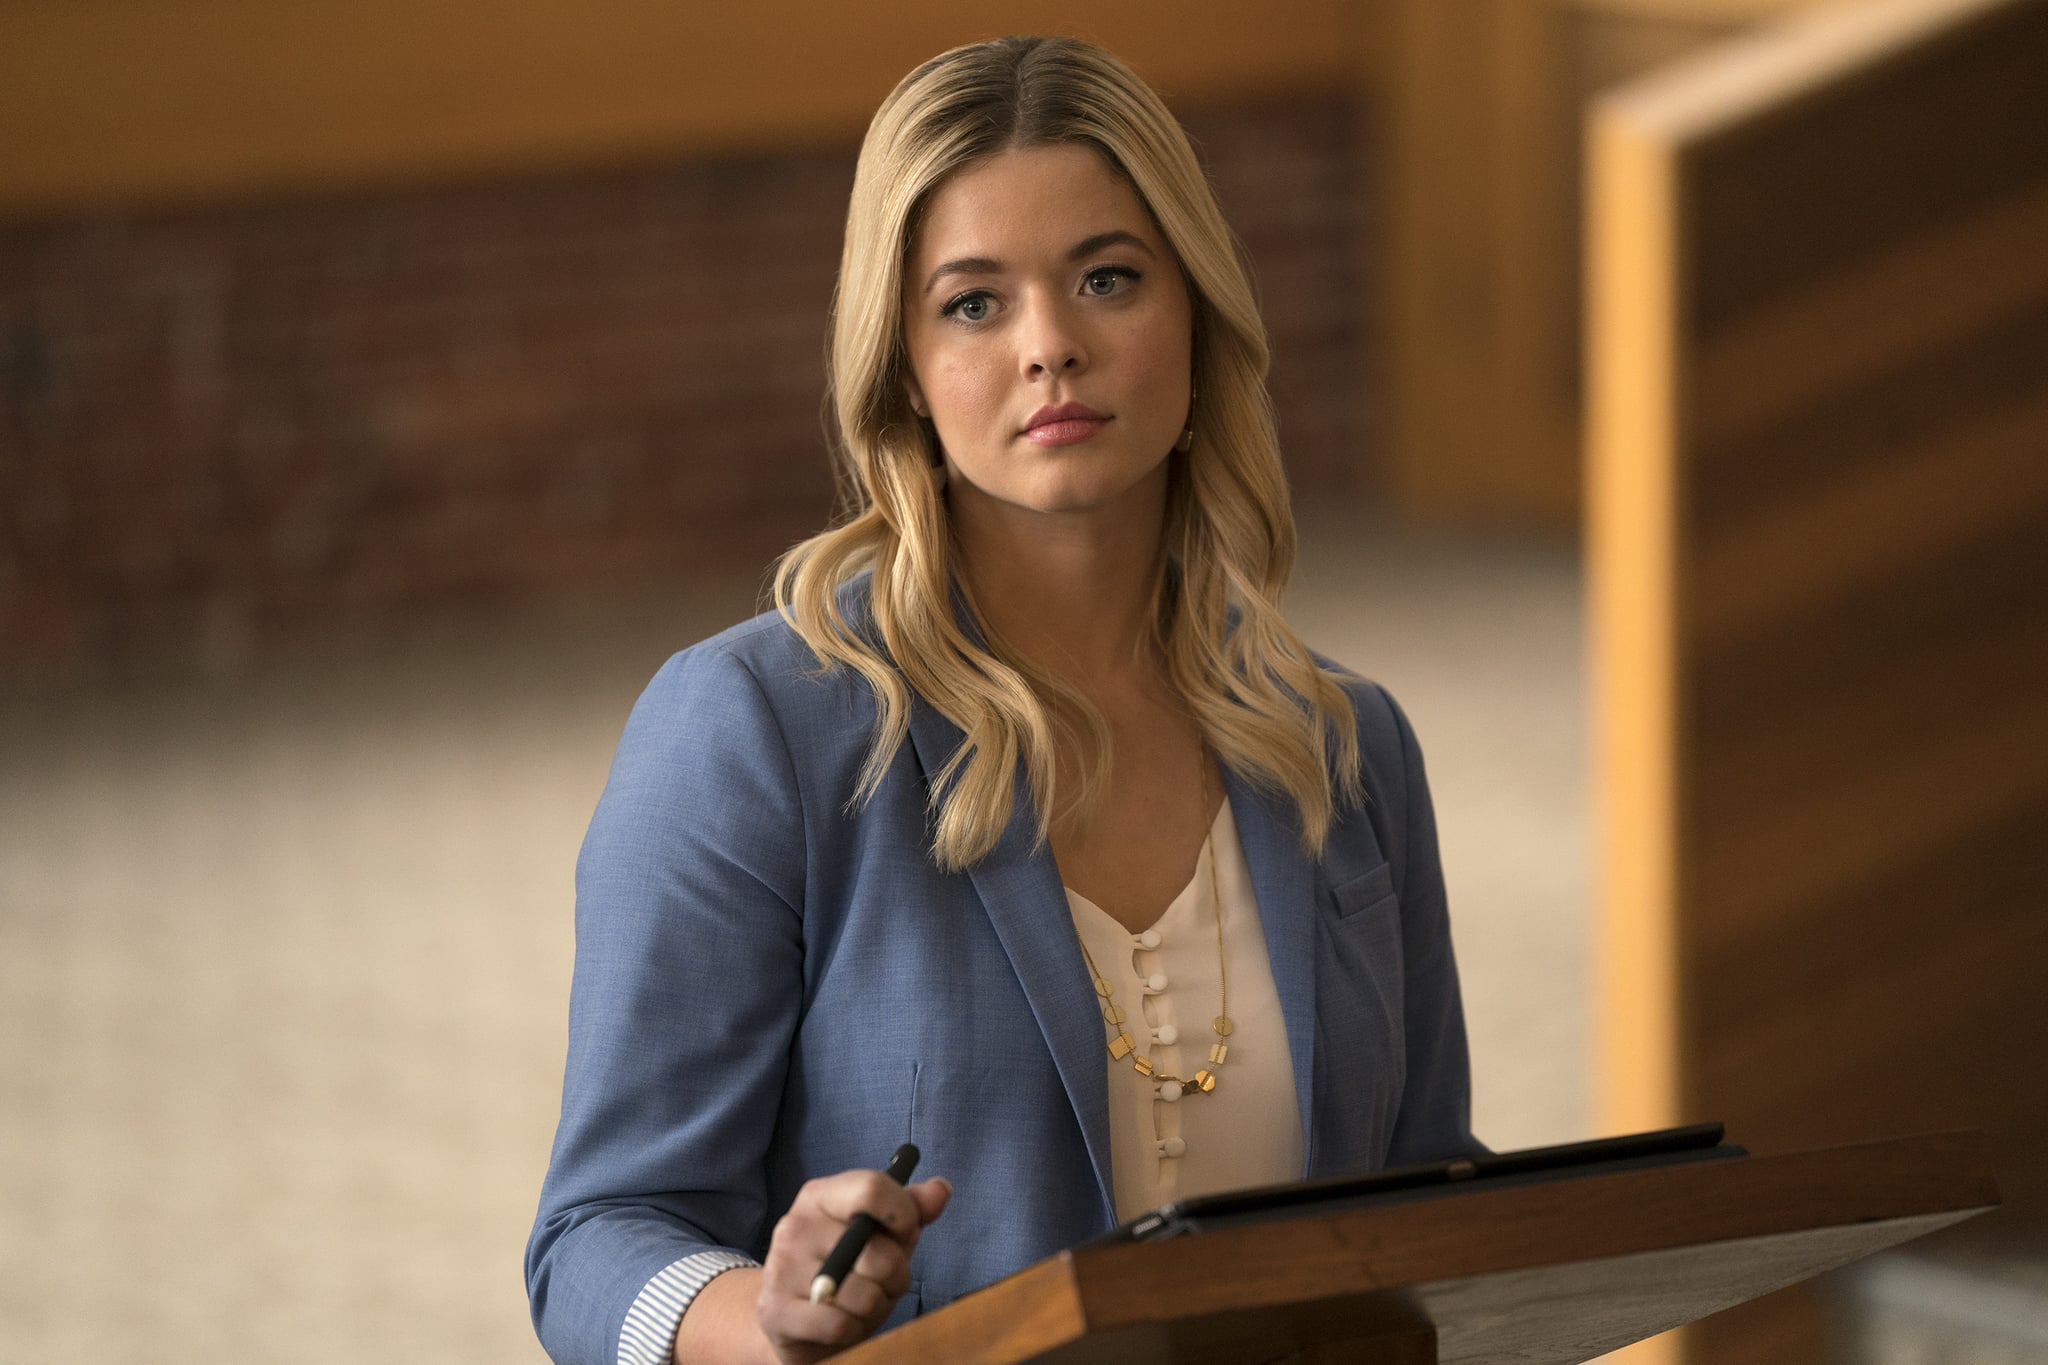 PRETTY LITTLE LIARS: THE PERFECTIONISTS -